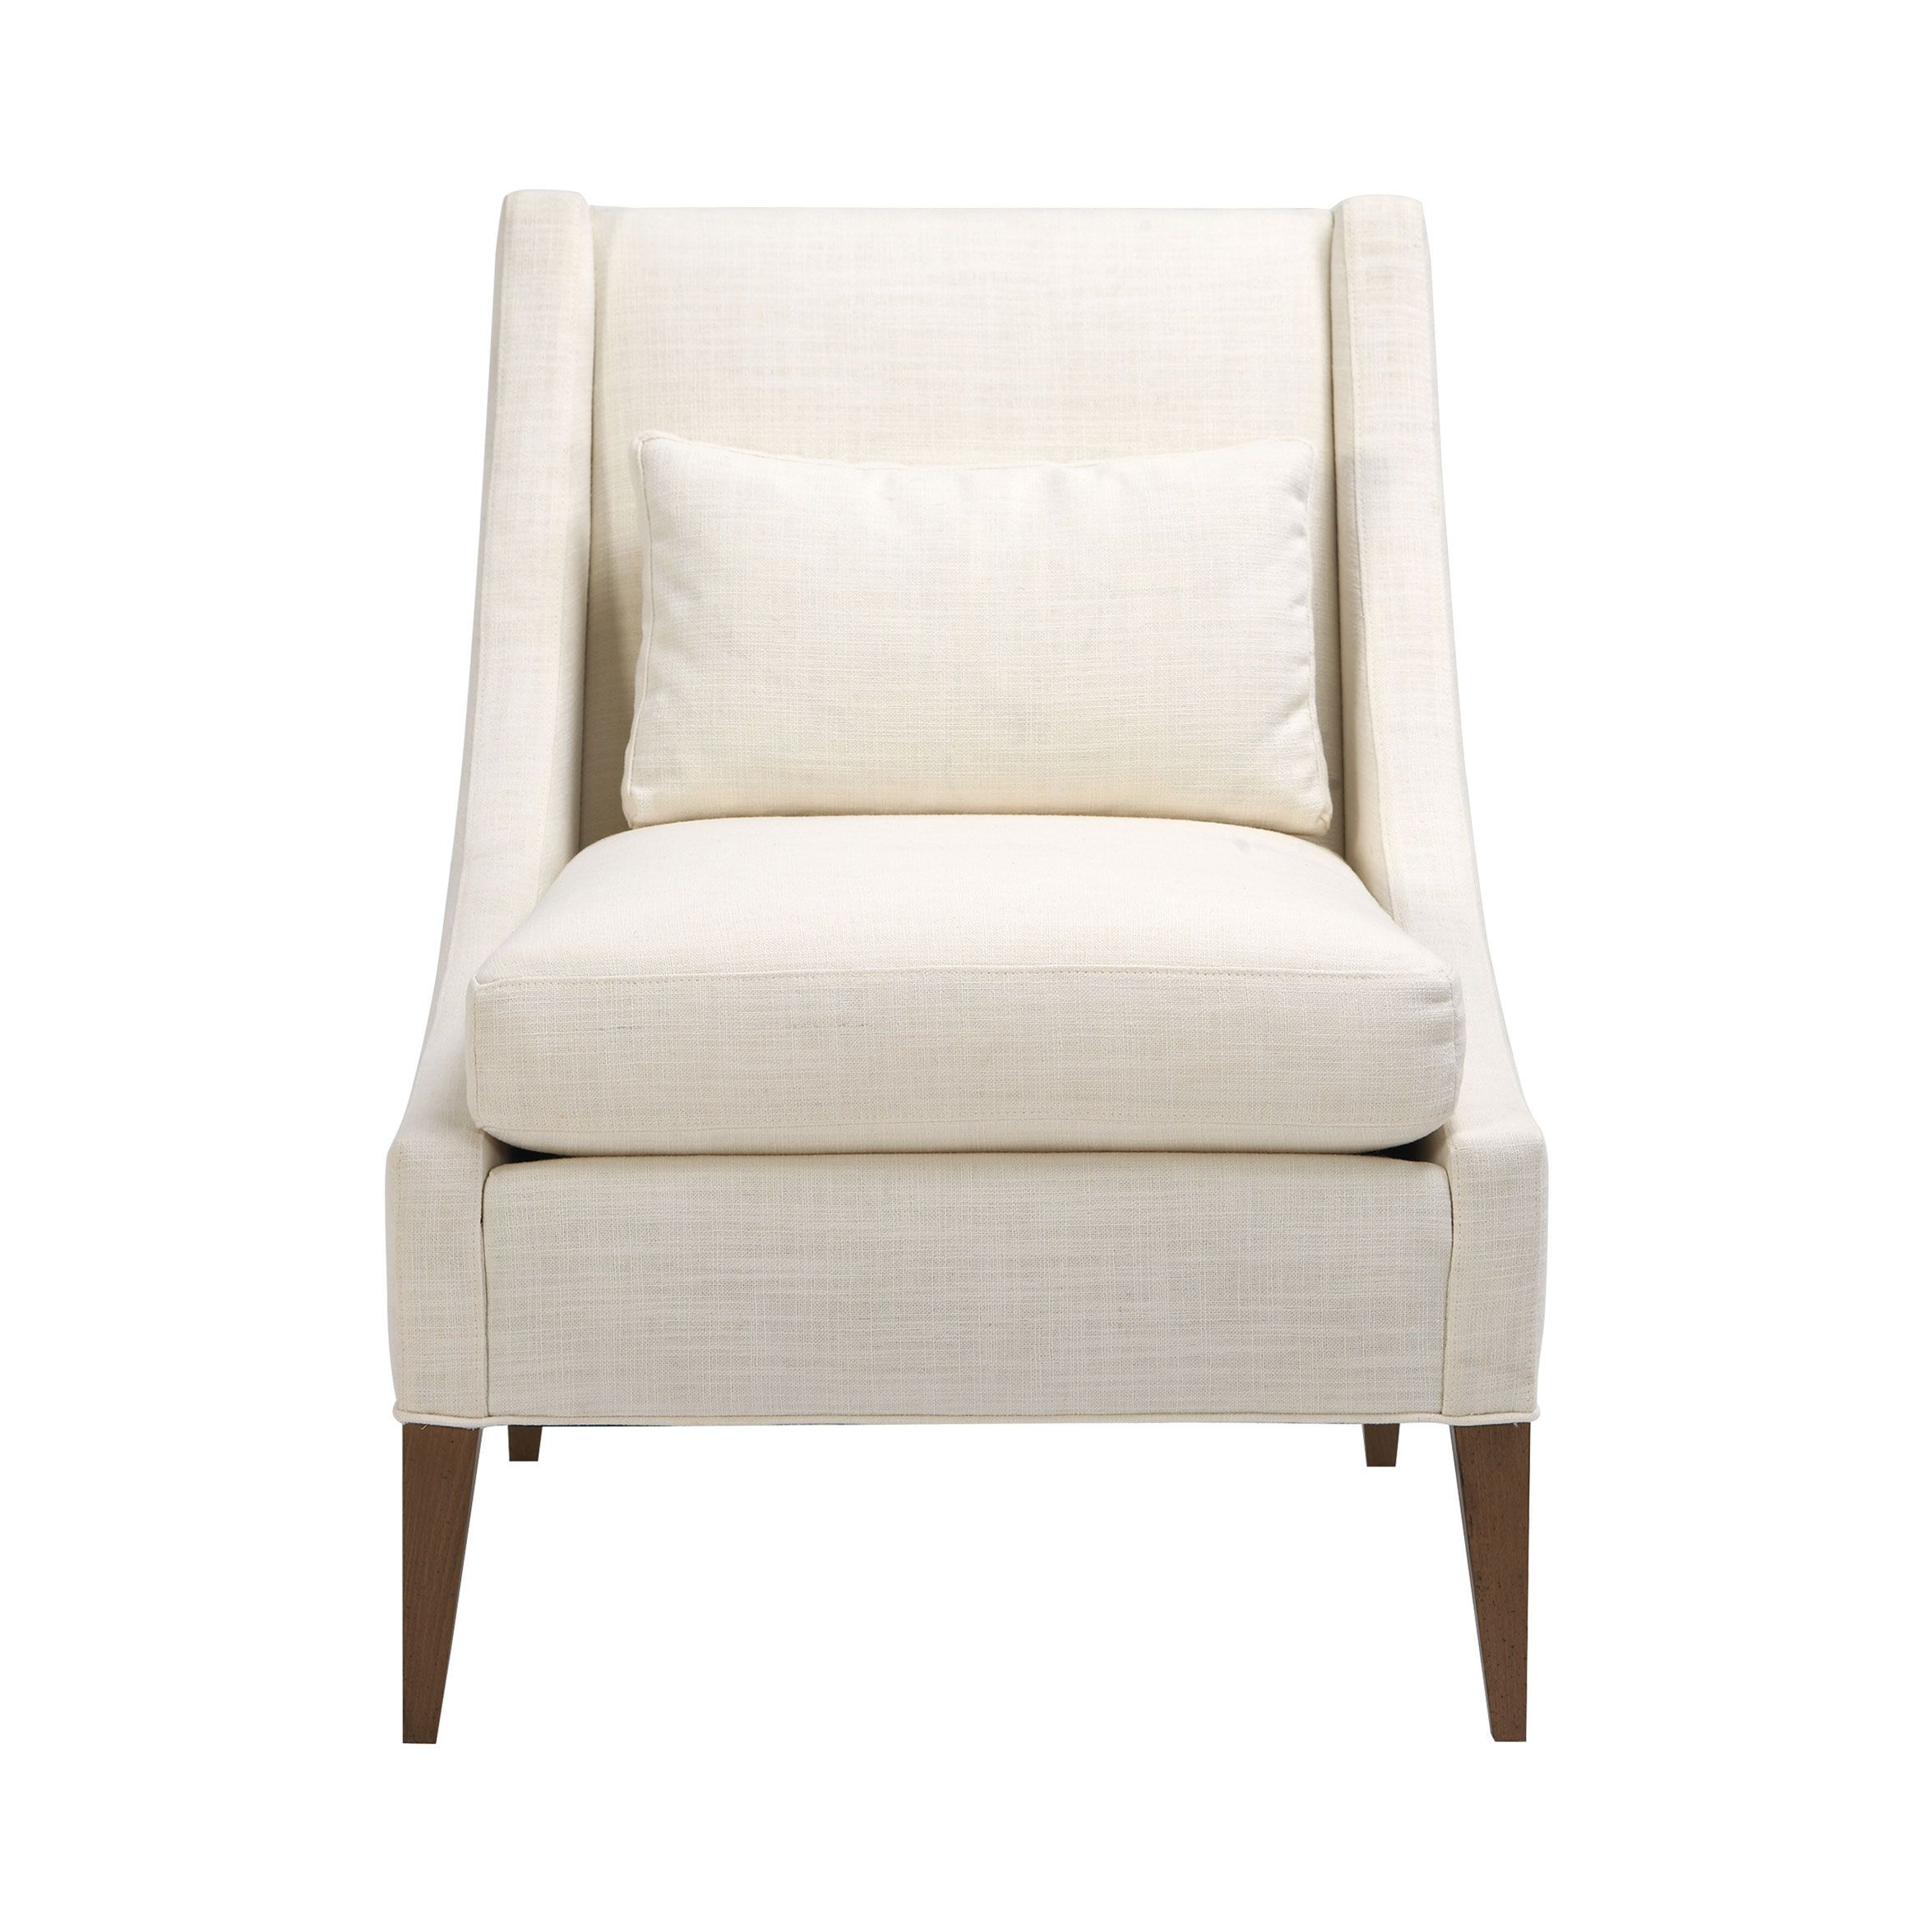 Atwood Chair, Archer/Ivory   Ethan Allen US